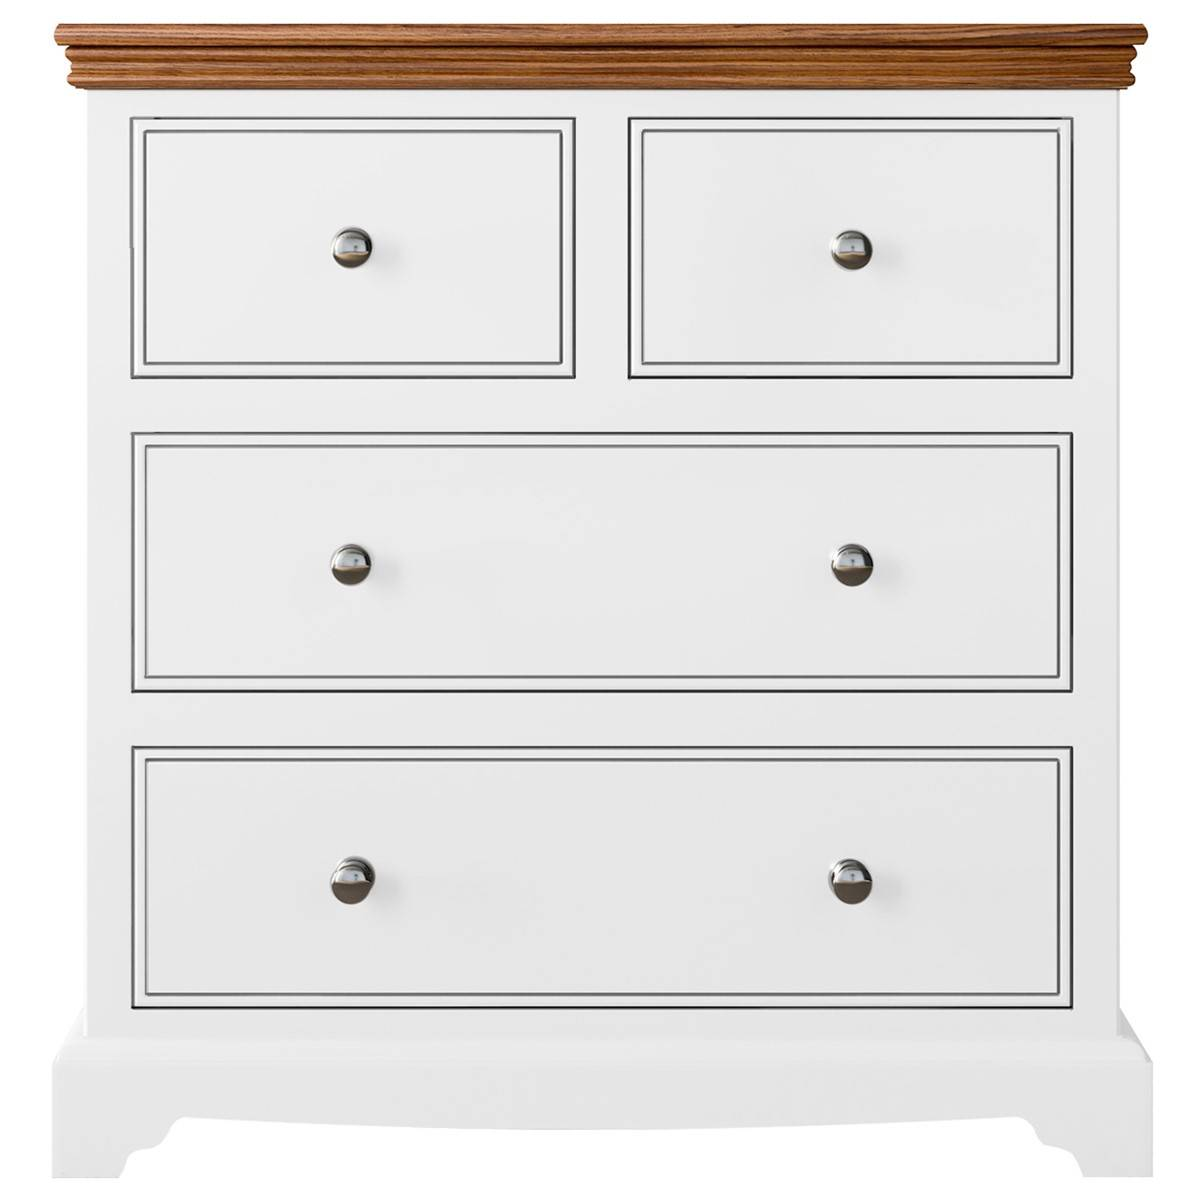 Charmant TCBC Inspiration Bedroom 2 2 Chest Of Drawers